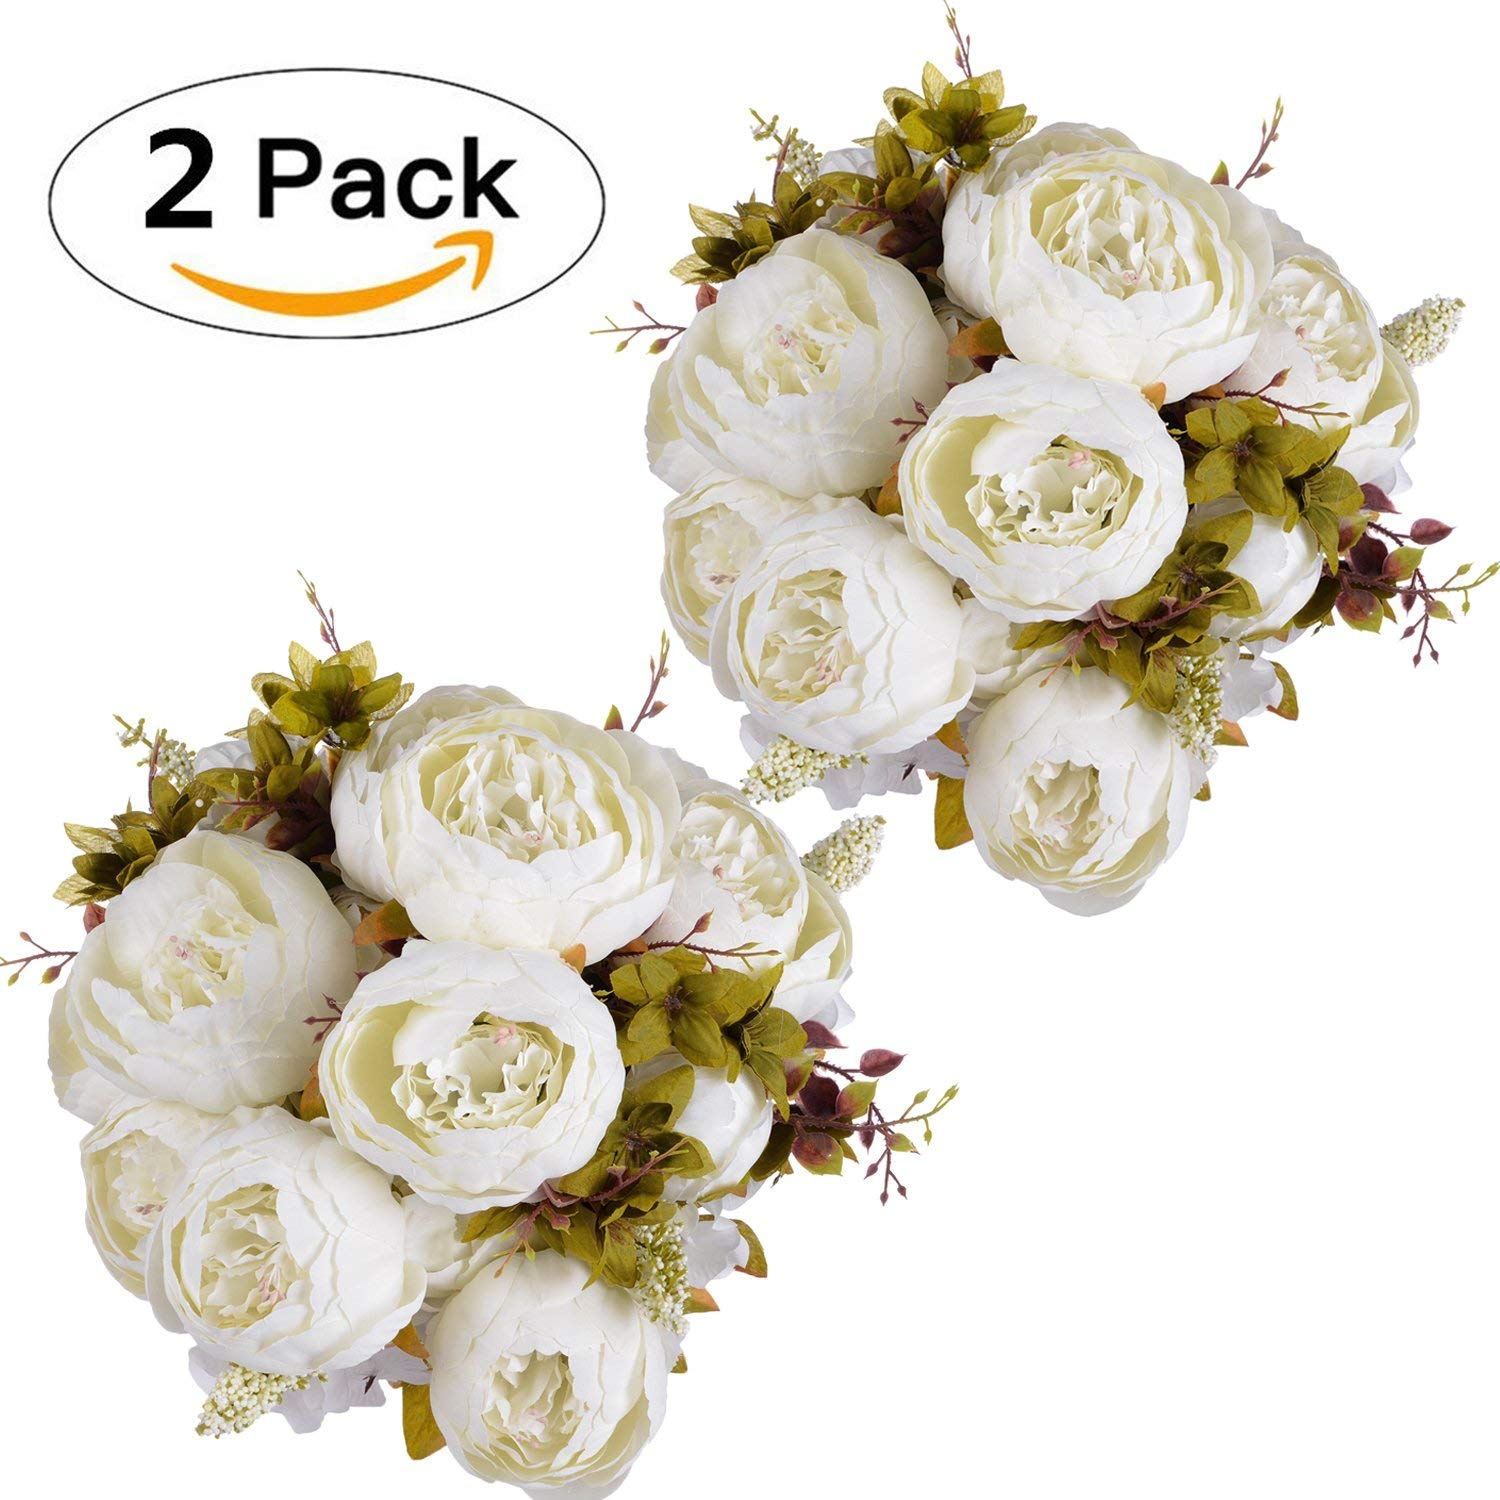 Coolmade Fake Flowers Vintage Artificial Peony Silk Flowers Wedding Home Decoration,Pack of 2 (Light Pink)